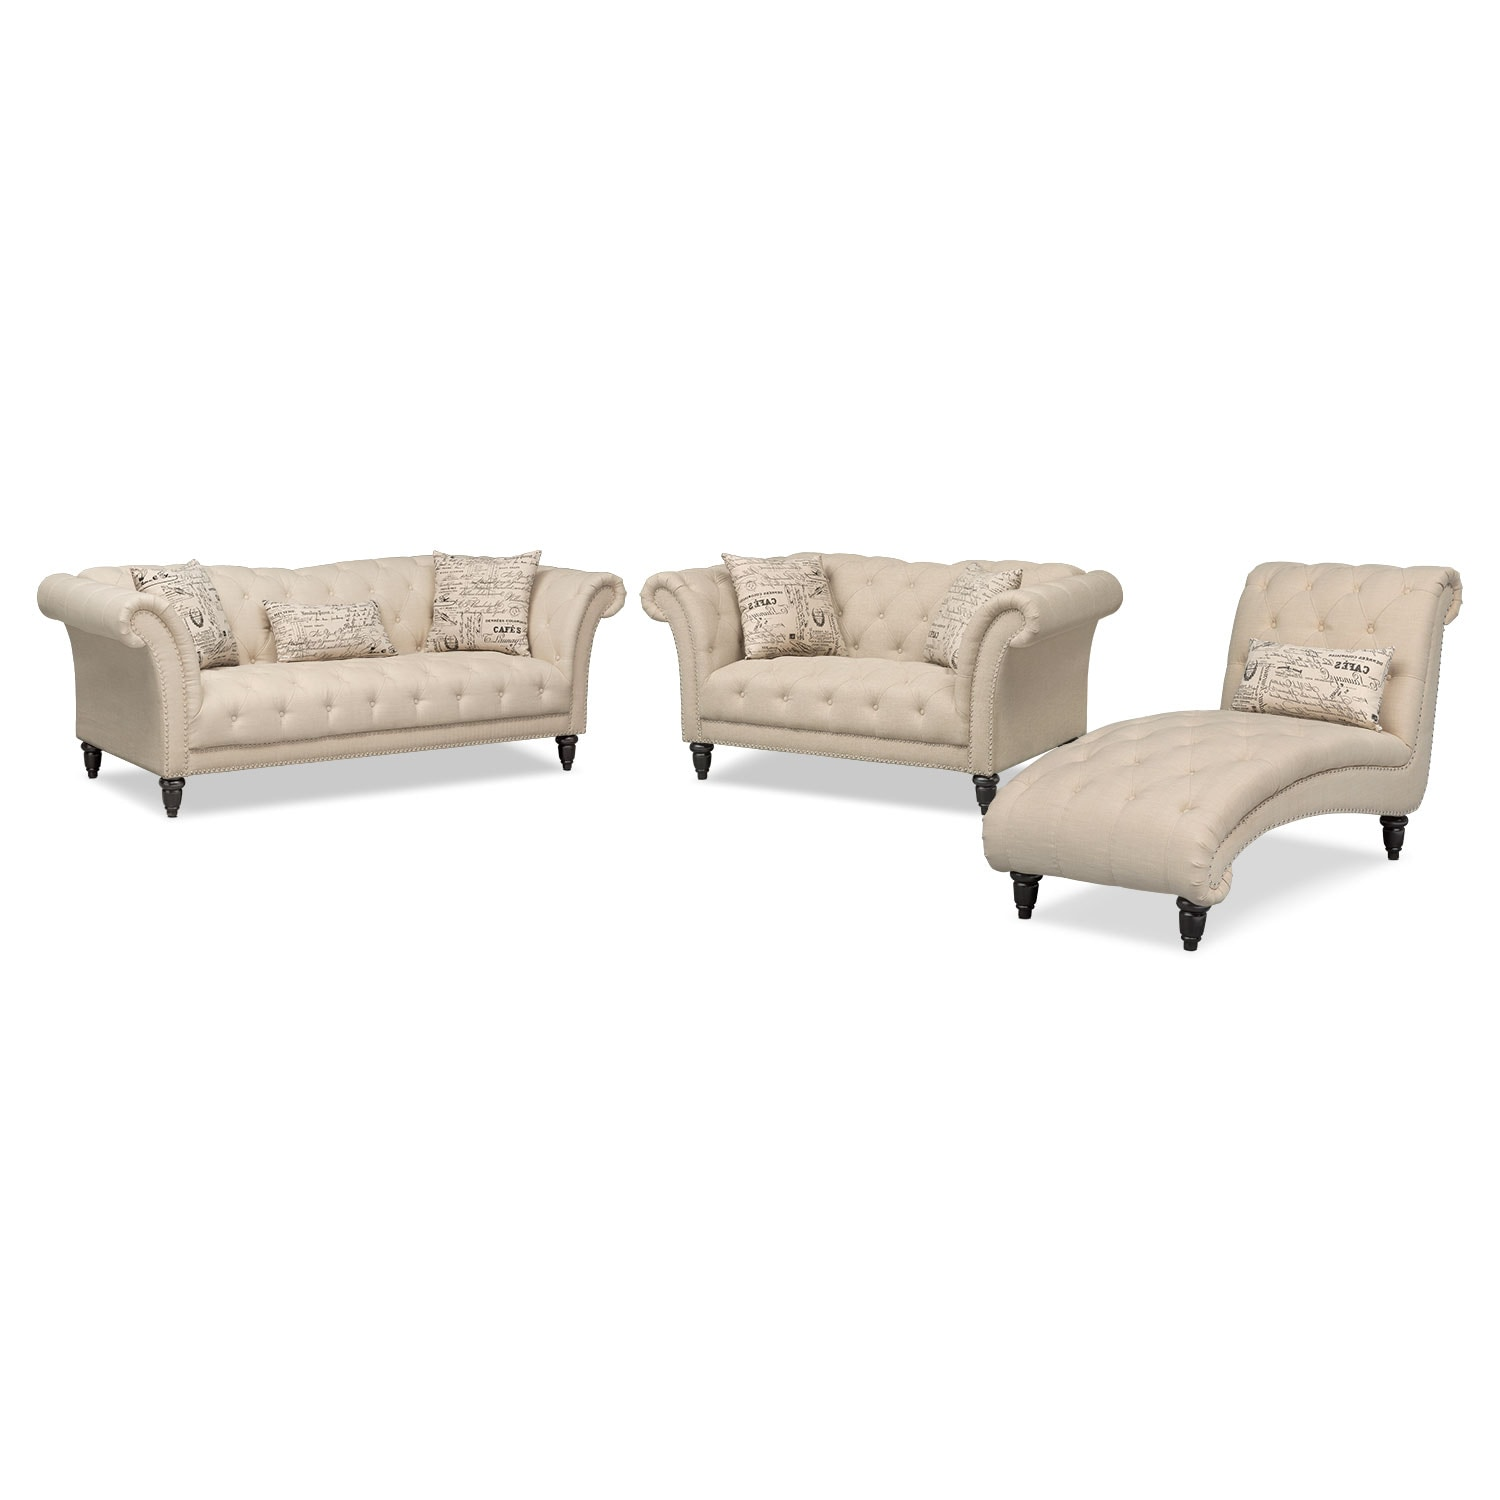 Marisol Sofa, Loveseat and Chaise Set - Beige